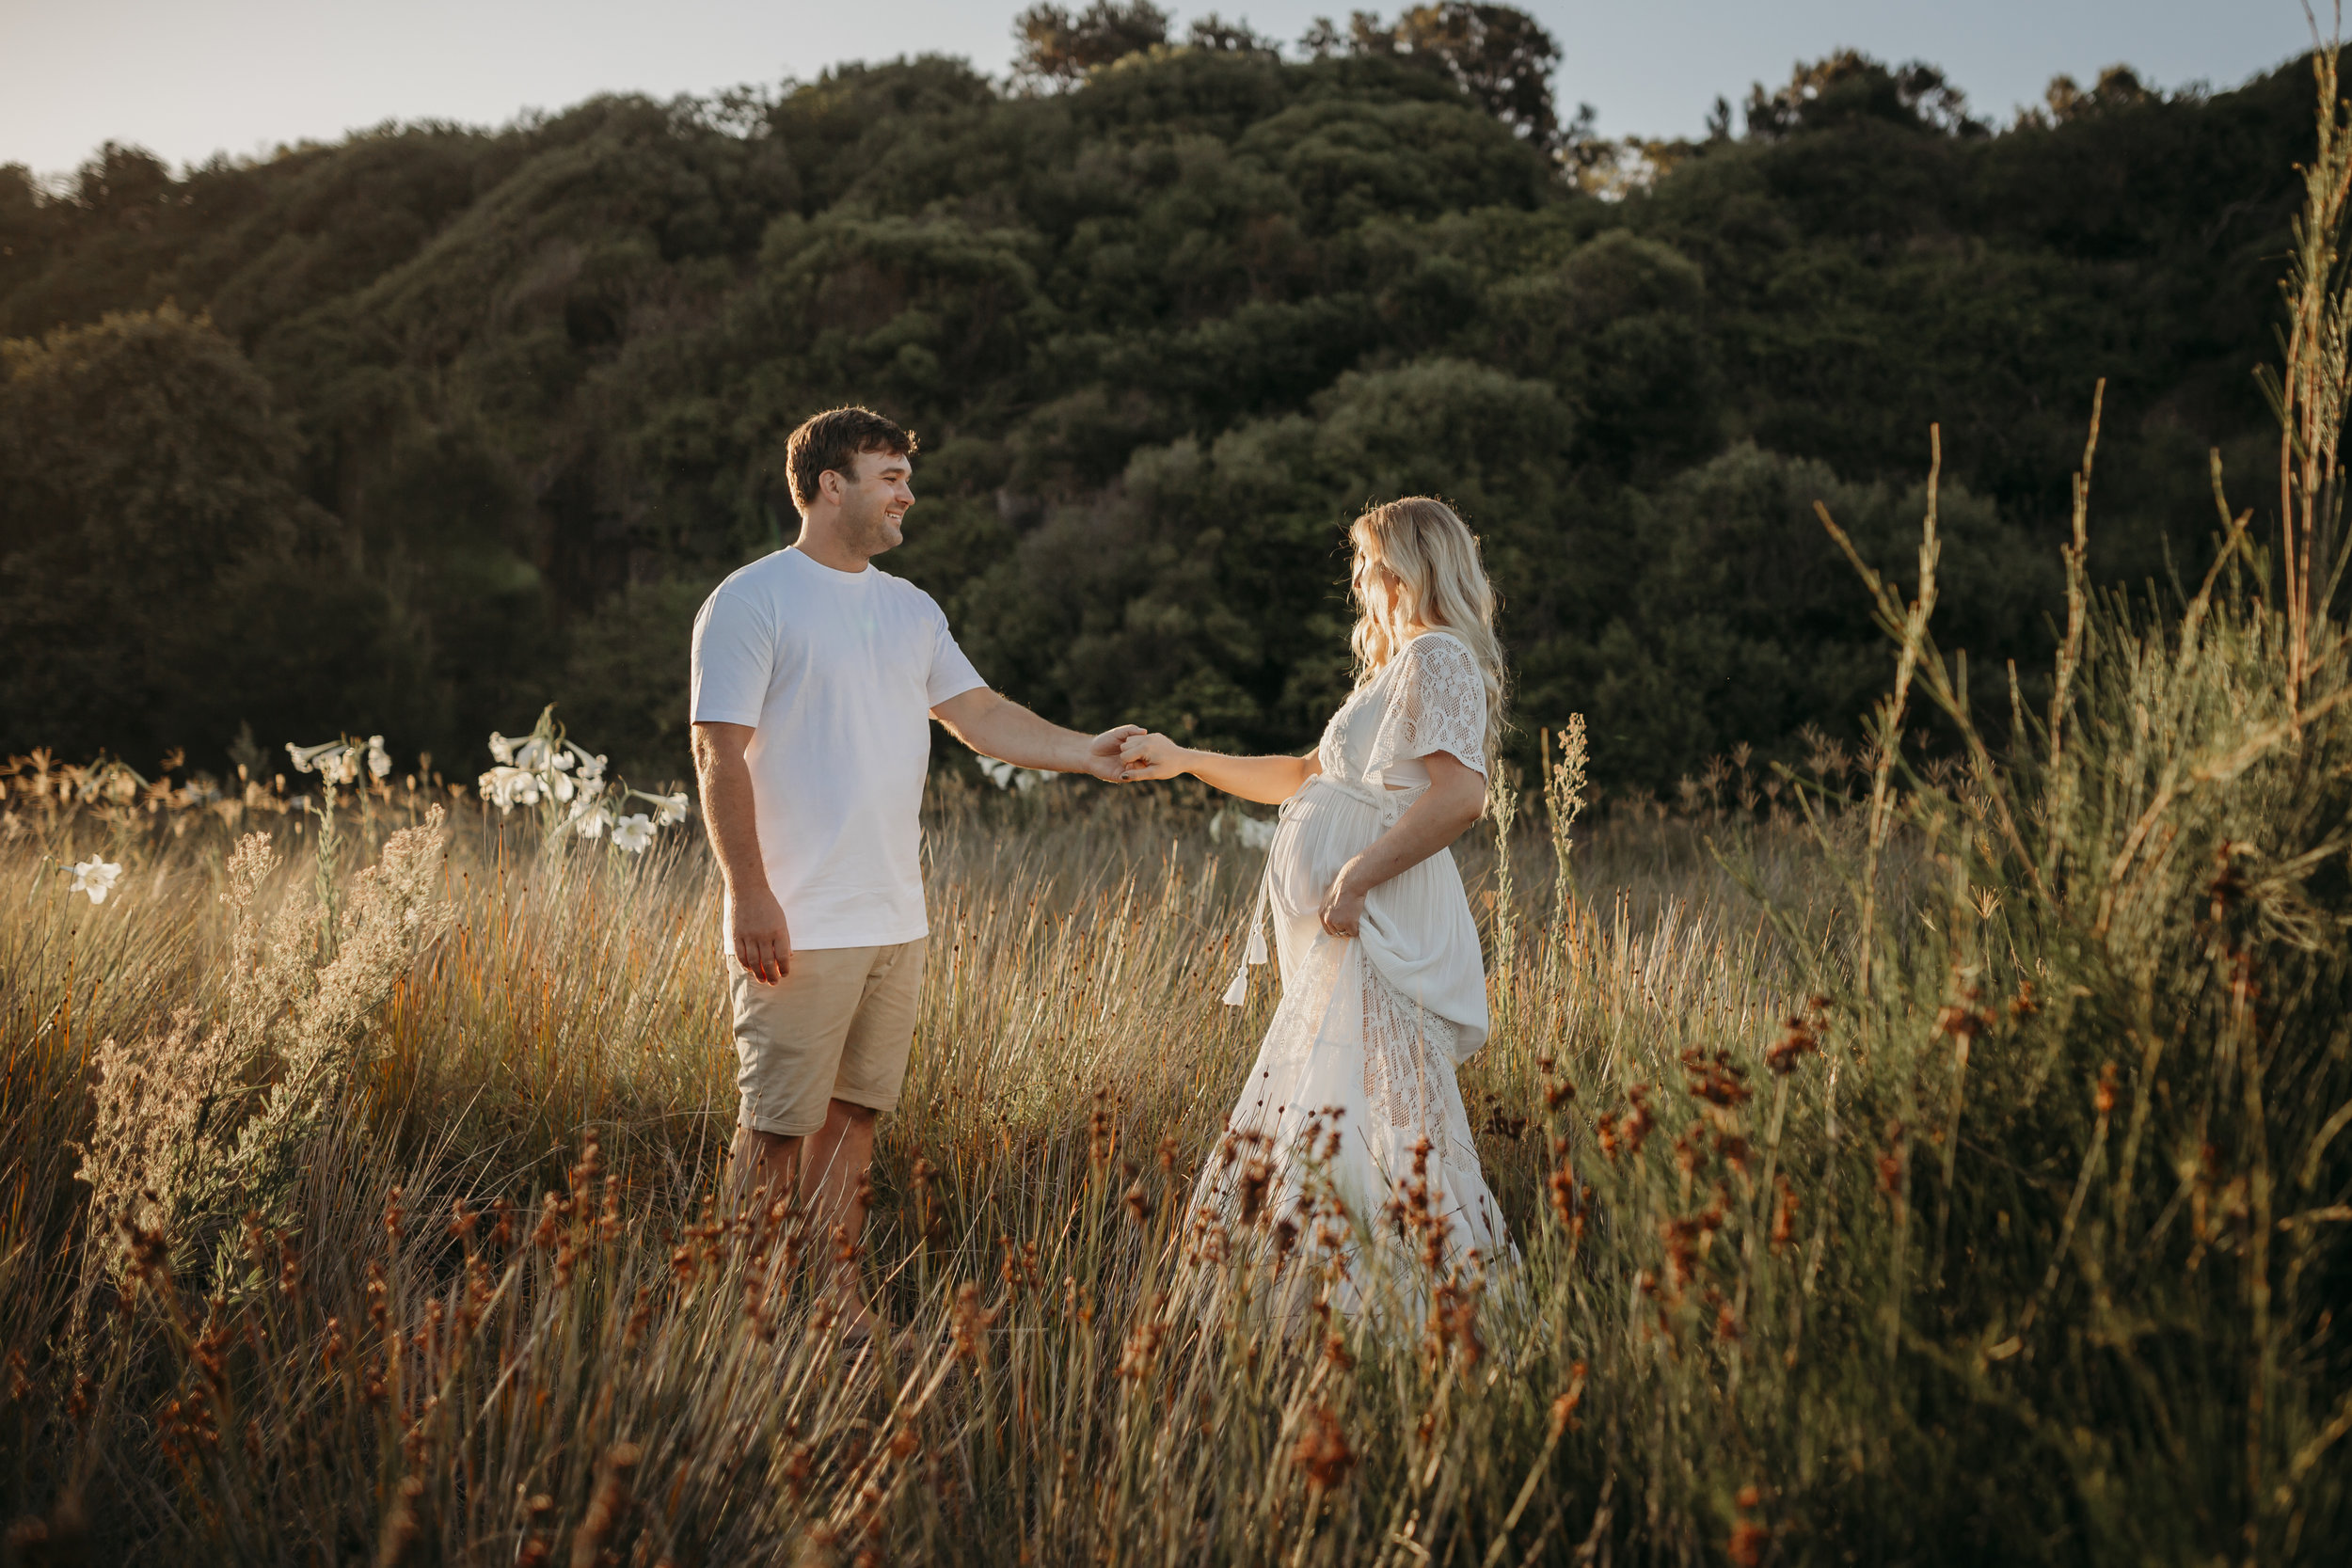 Maternity + Newborn - Capture the pure magic of pregnancy with a maternity session. Fun, relaxed and honest, documenting one of the most important chapters of your story. Team it with a newborn session and you have a complete chapter for you story book.